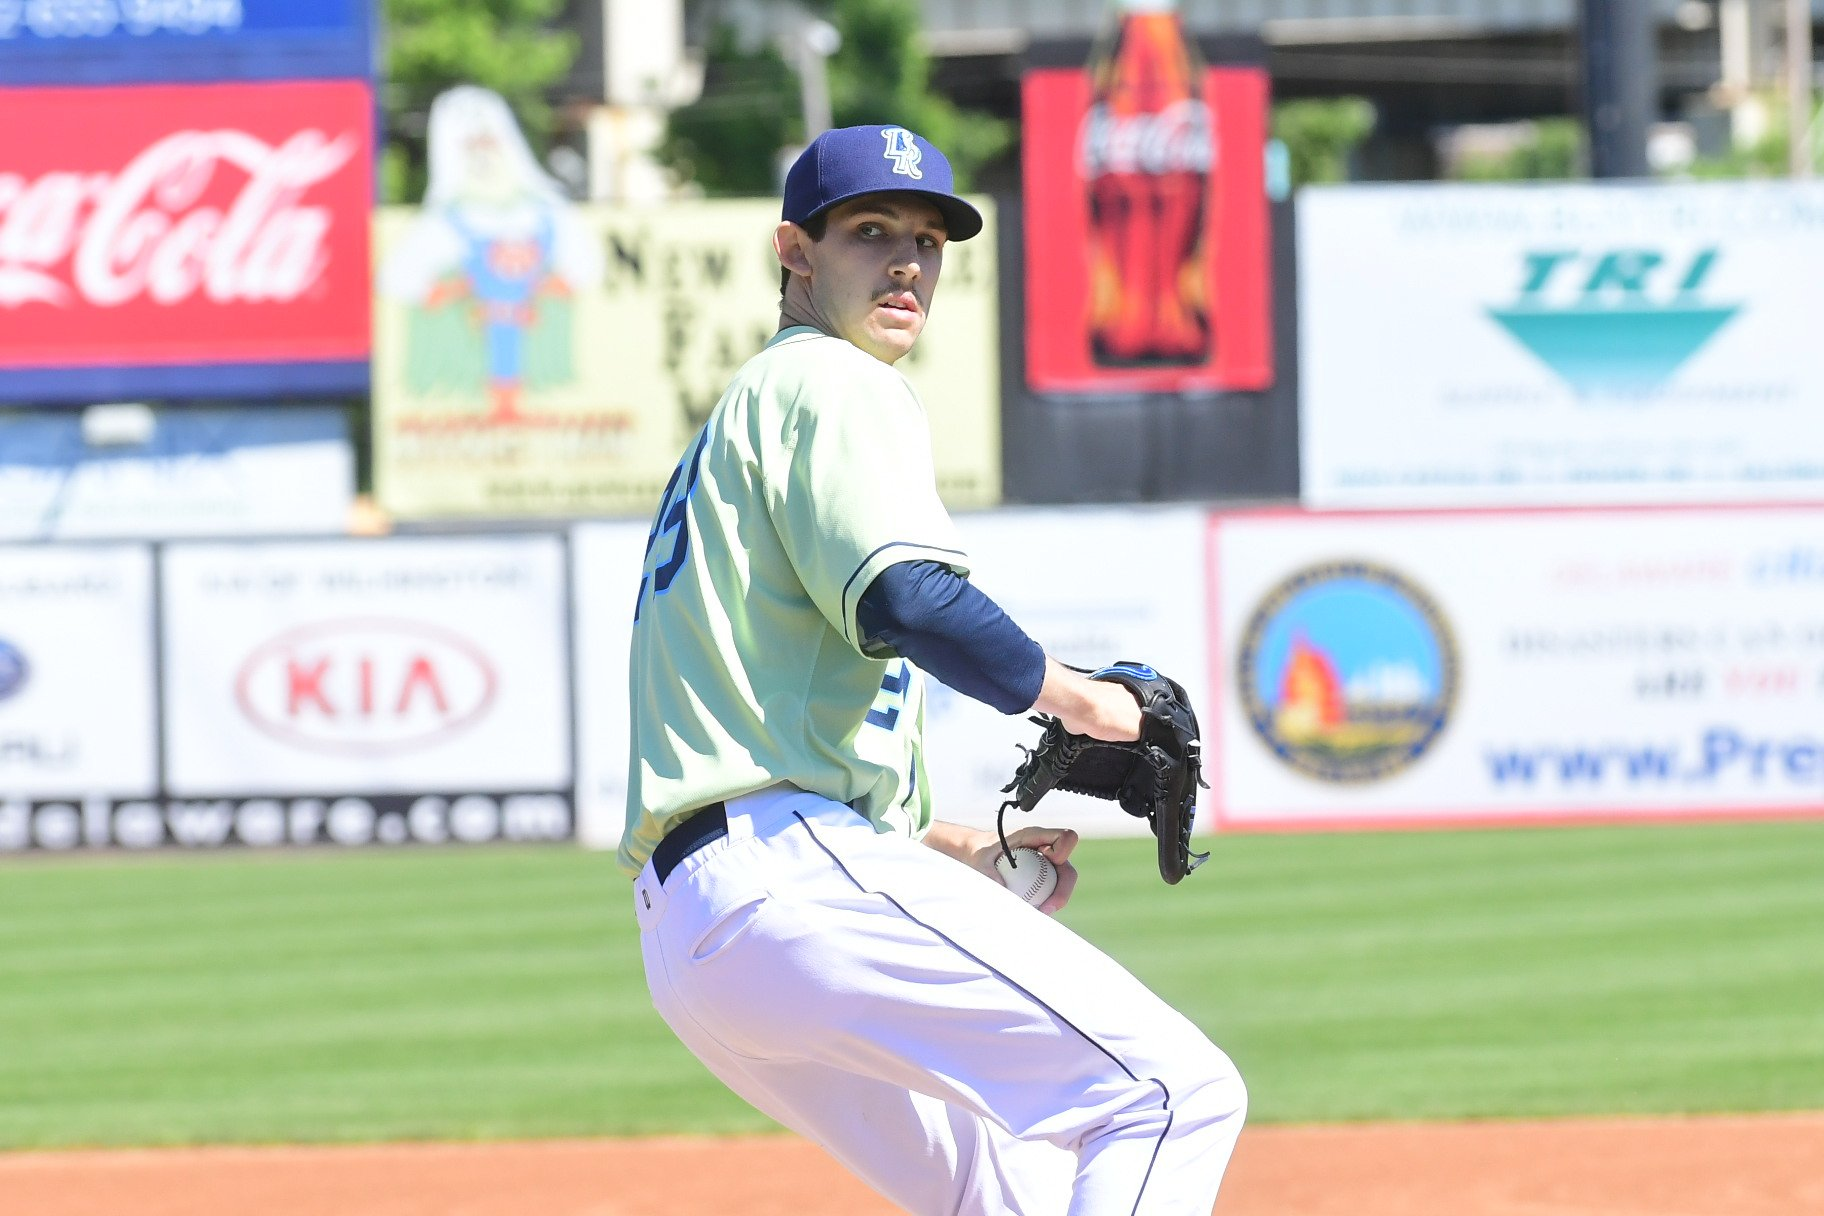 Starter Daniel Lynch was brilliant this afternoon on the mound for the Rocks. His final line...  7.0 IP, 2 H, 0 R, 0 ER, 9 K, 0 BB on 100 pitches (70 strikes) https://t.co/0LYet8qBY9